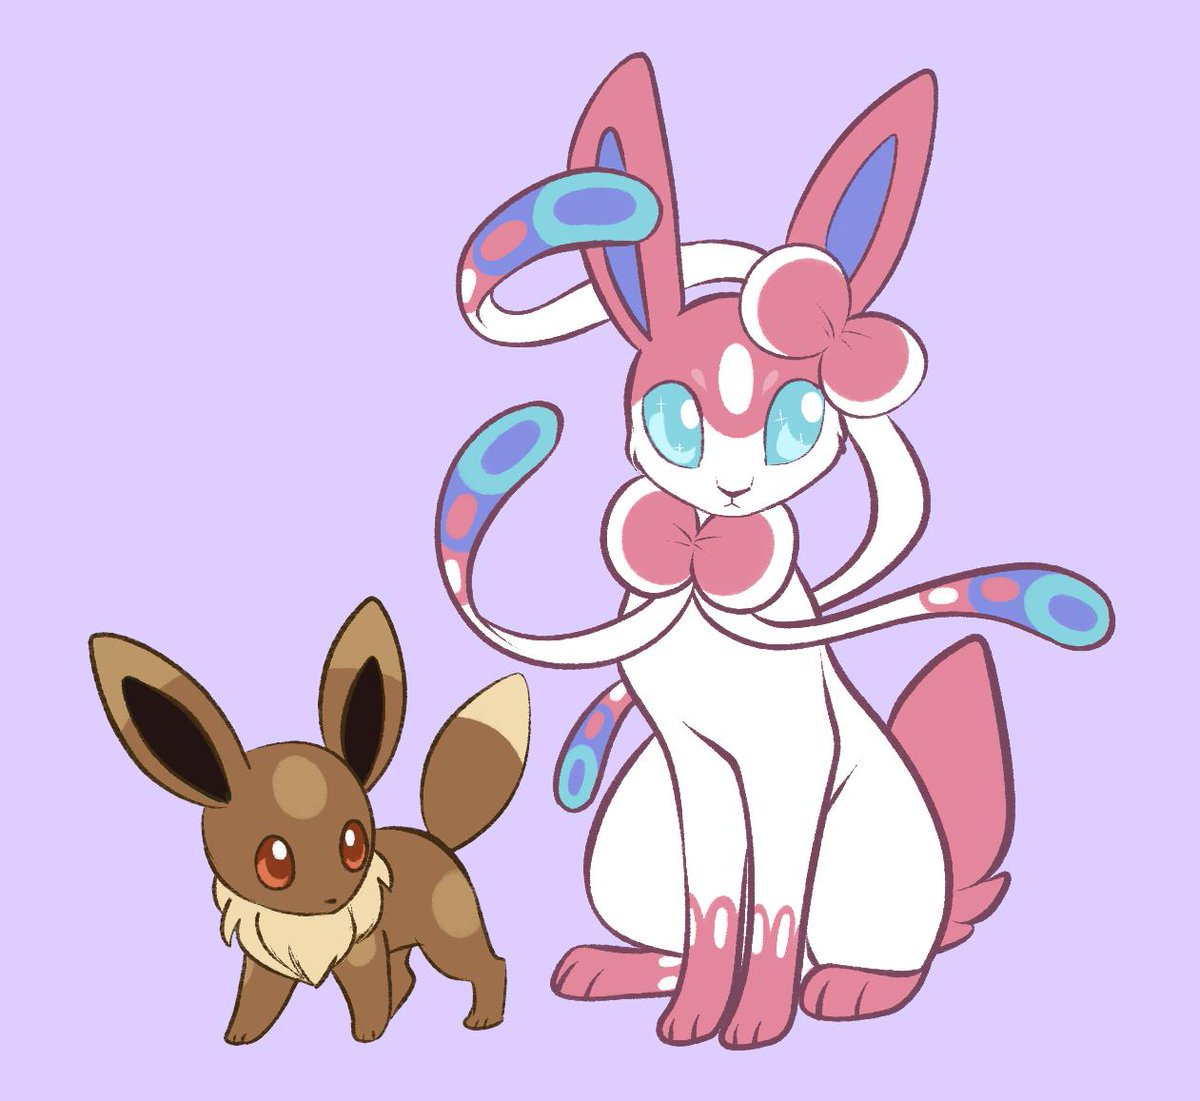 adopt design for @MapleandPie !! eevee/sylveon with umbreon traits!<br>http://pic.twitter.com/9YLl3dHuBz